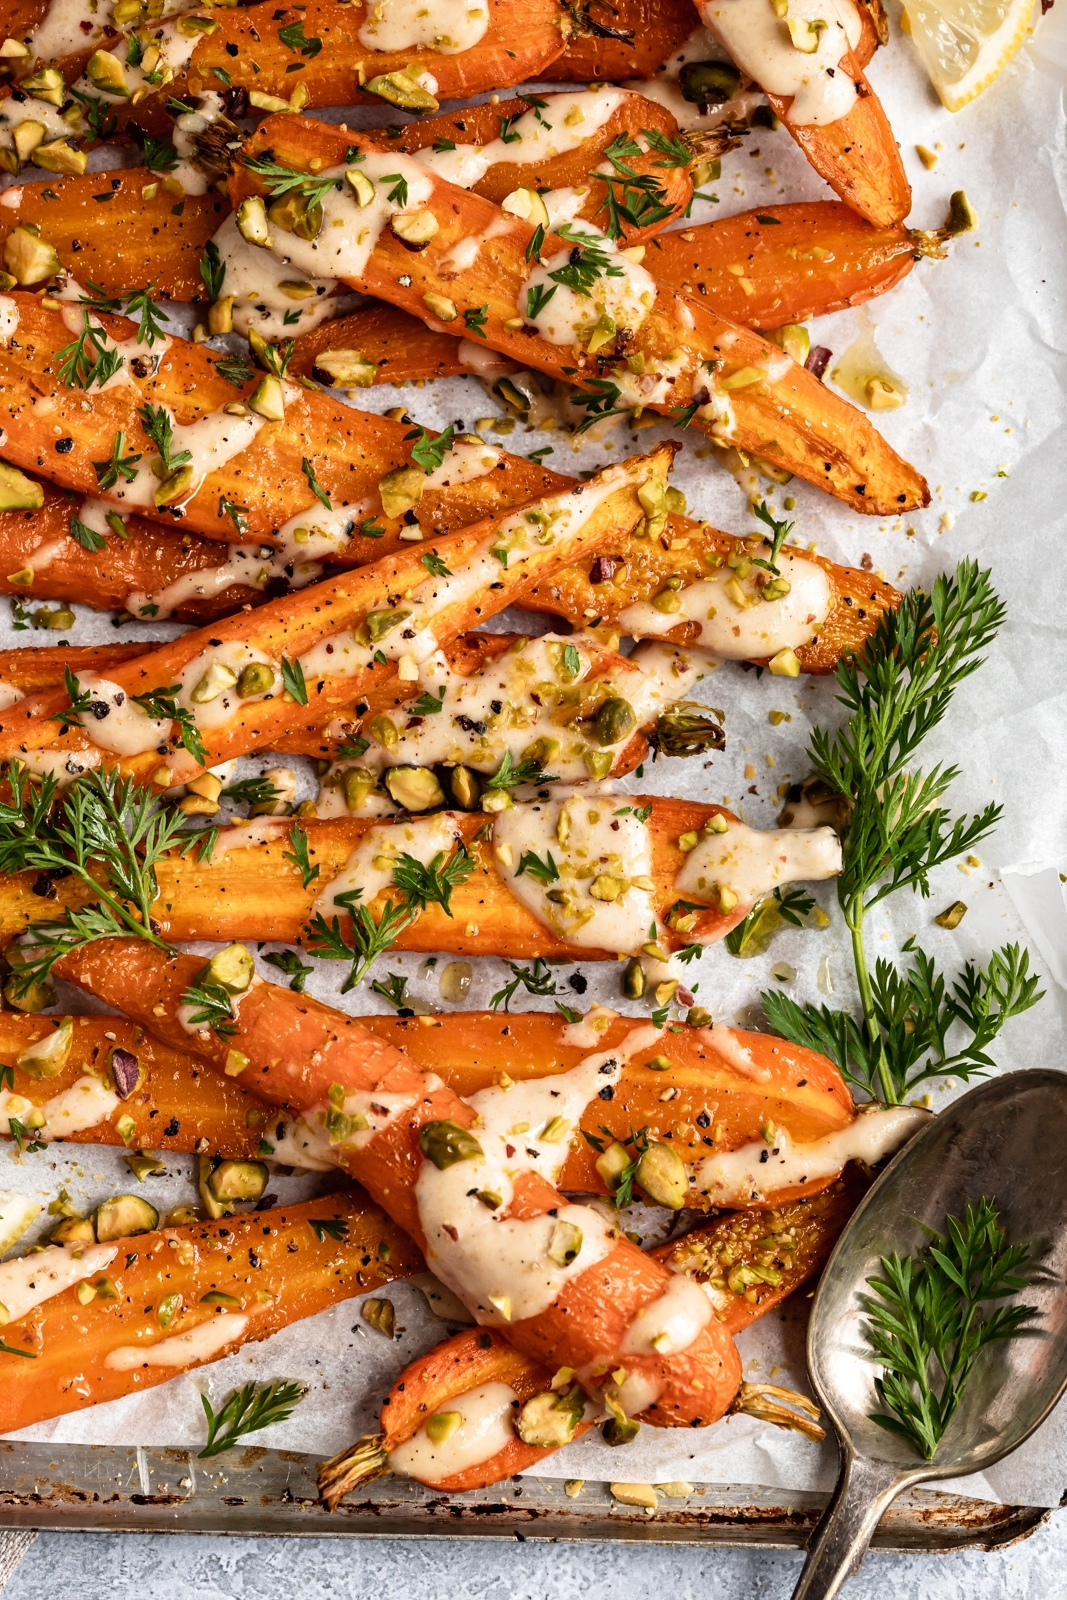 roasted carrots drizzled with creamy tahini sauce